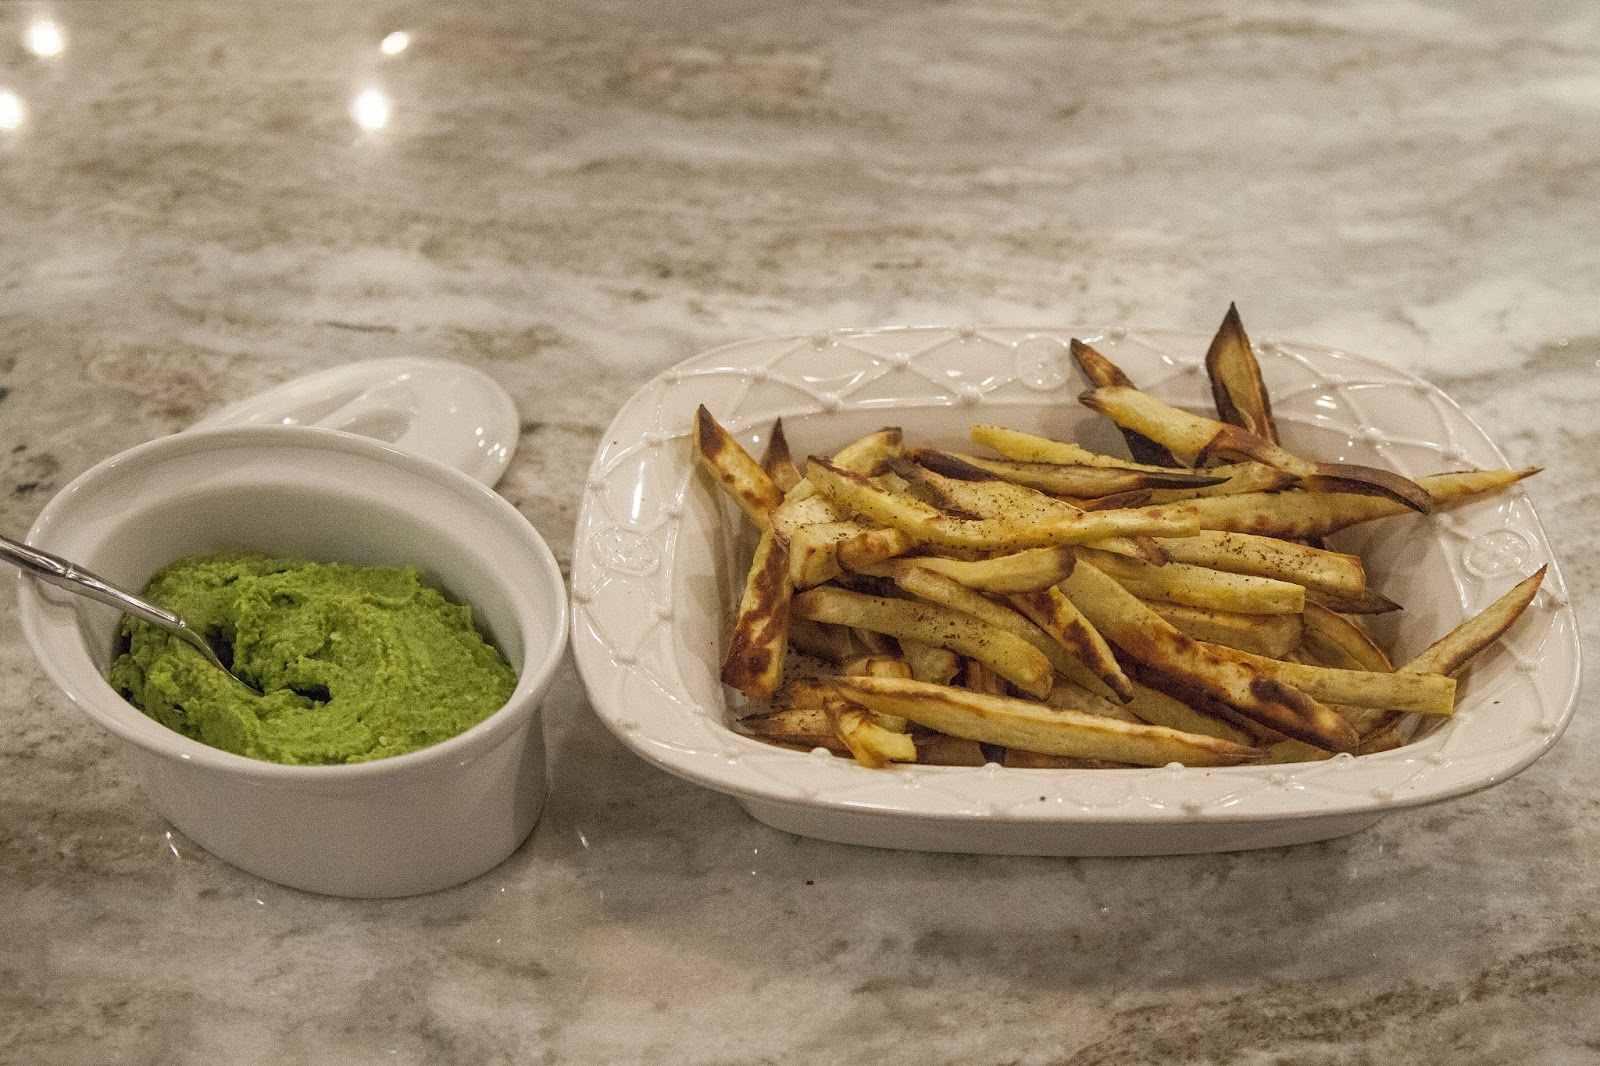 ... Sweet Potato Sumac Fries With Chickpea and Spinach Hummus Dip, Perfect